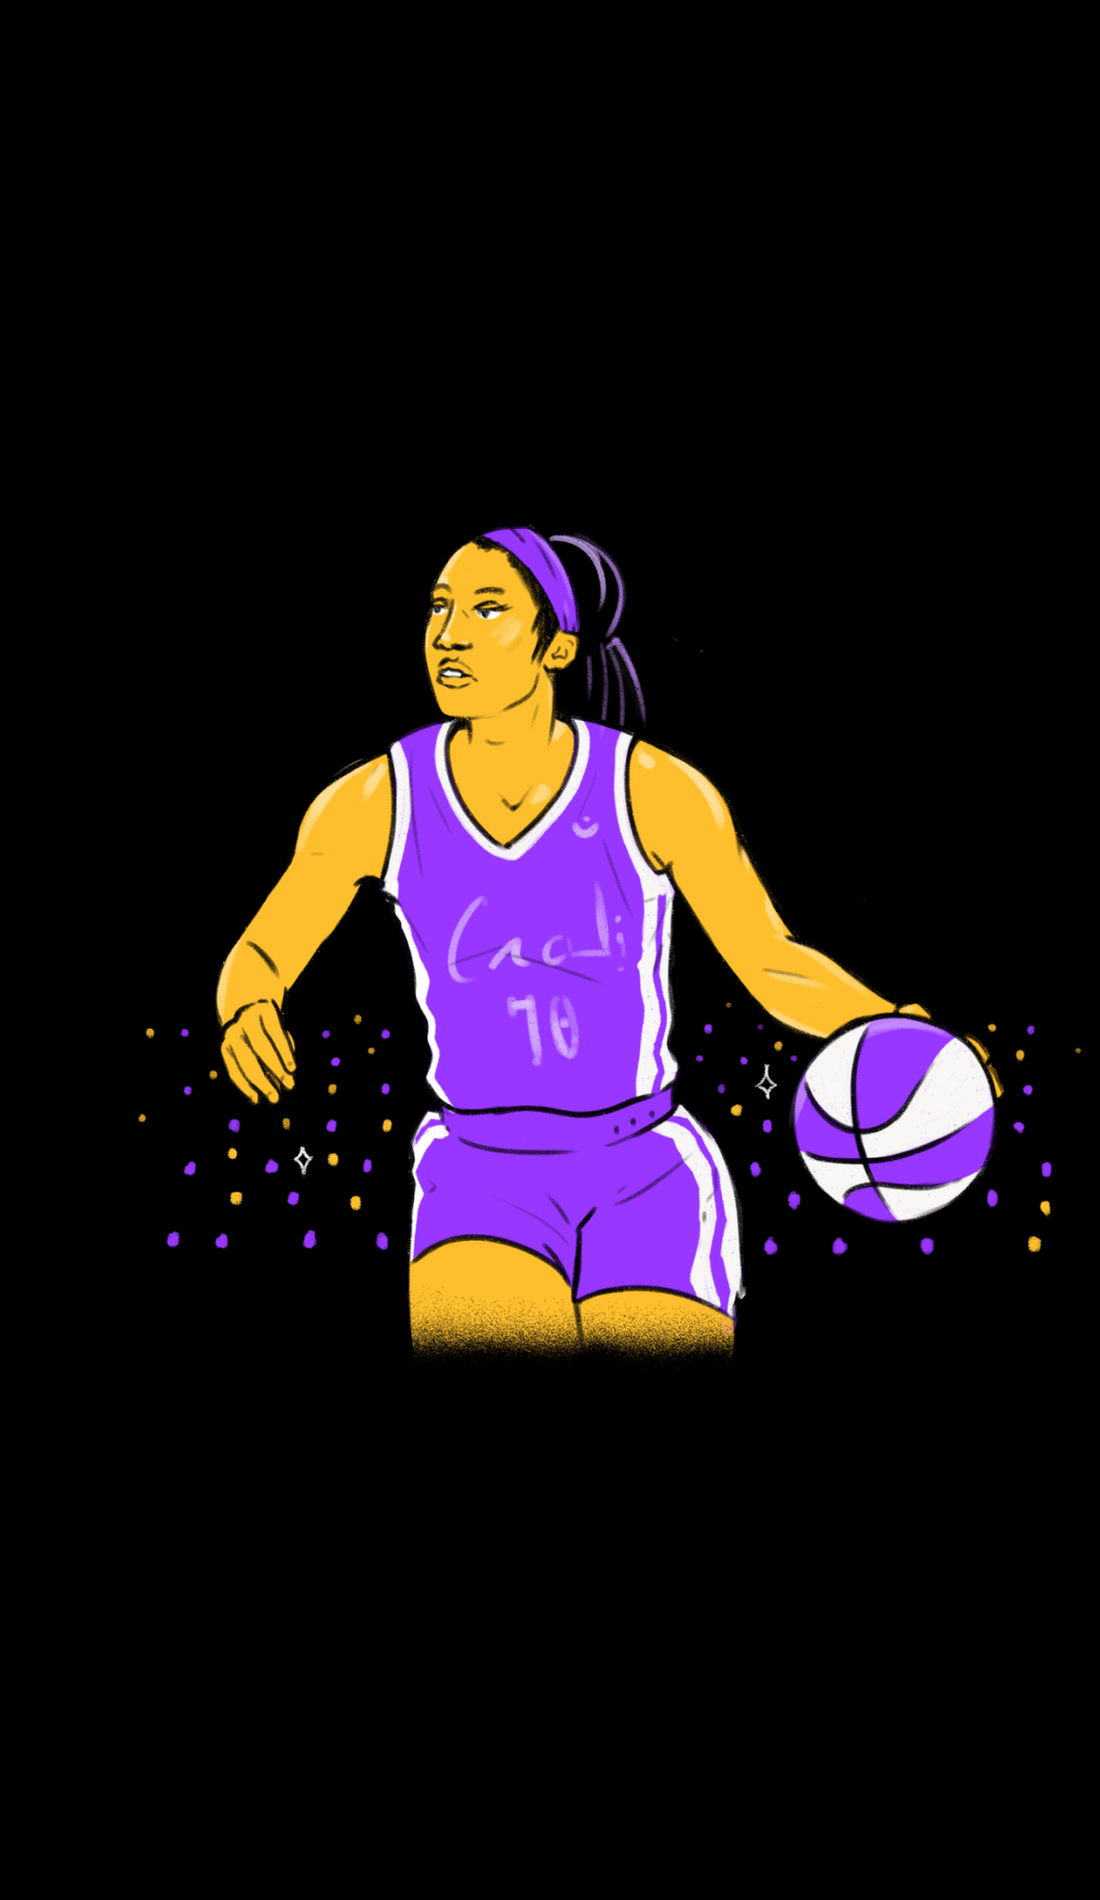 A Central Michigan Chippewas Womens Basketball live event